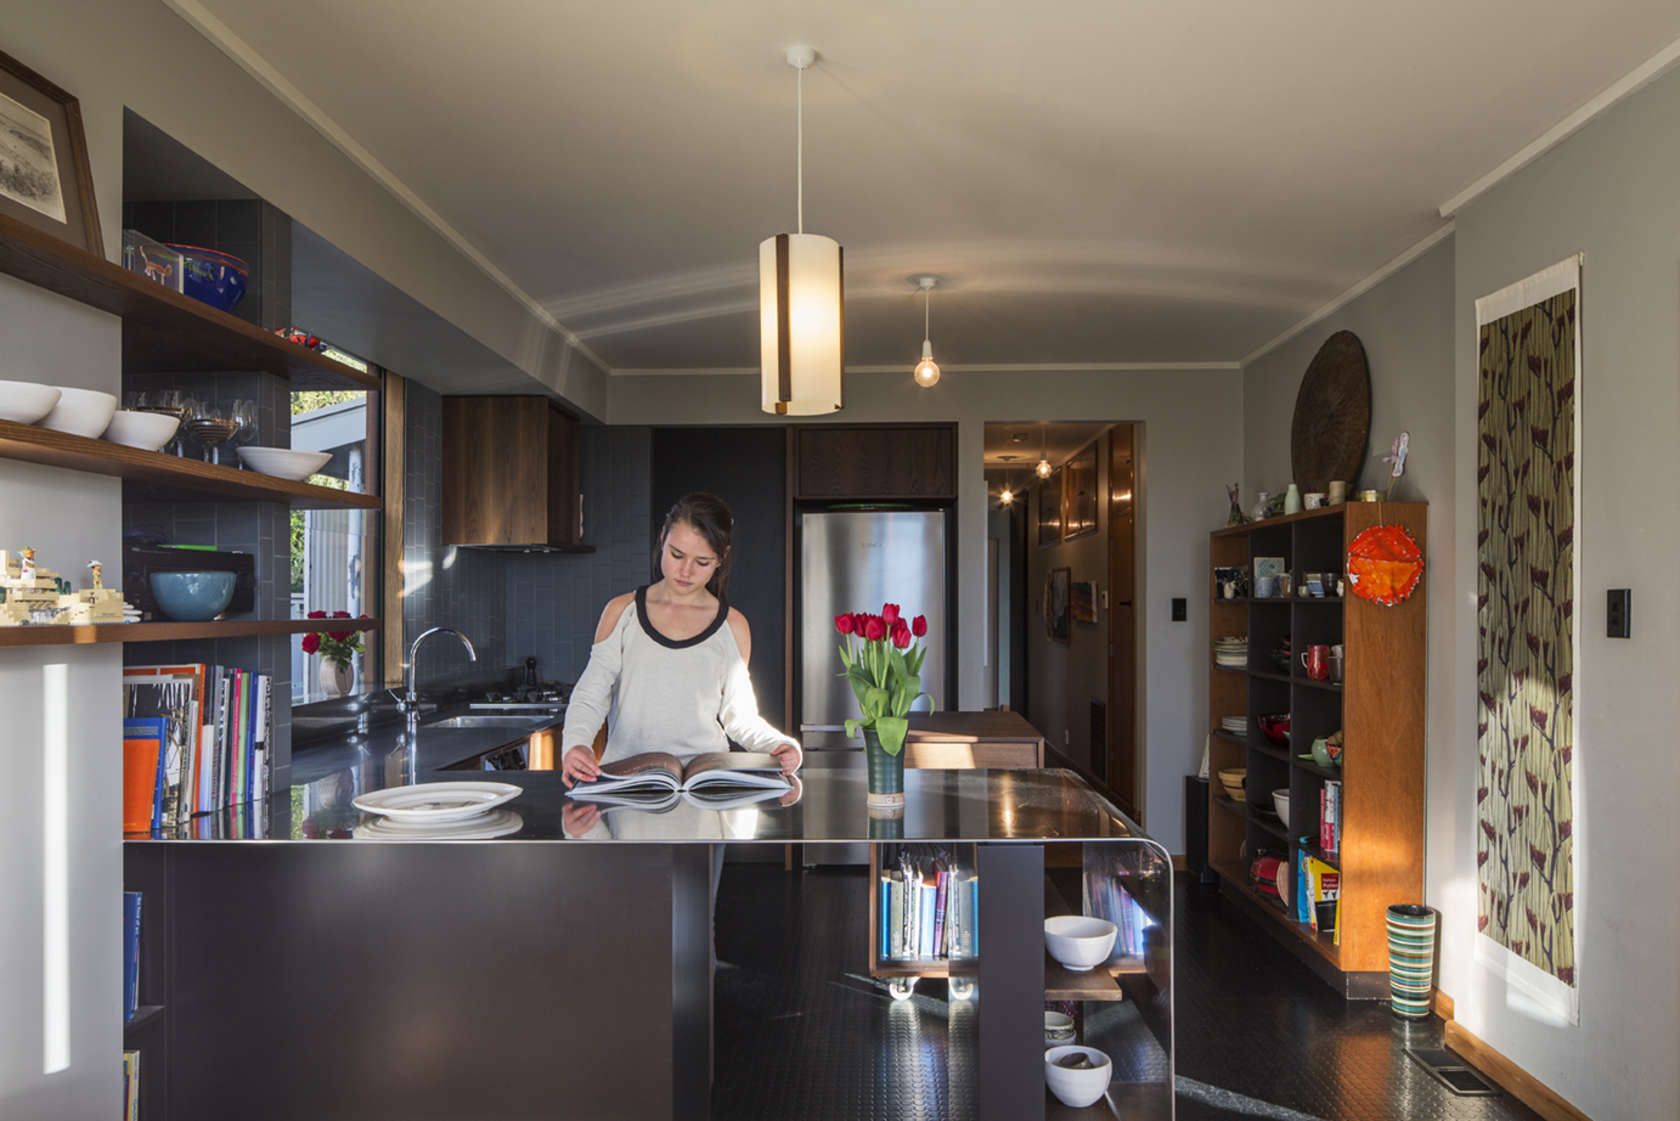 Smith Smith Kitchens: This Addition Was Architect's Gift For His Daughter's 13th